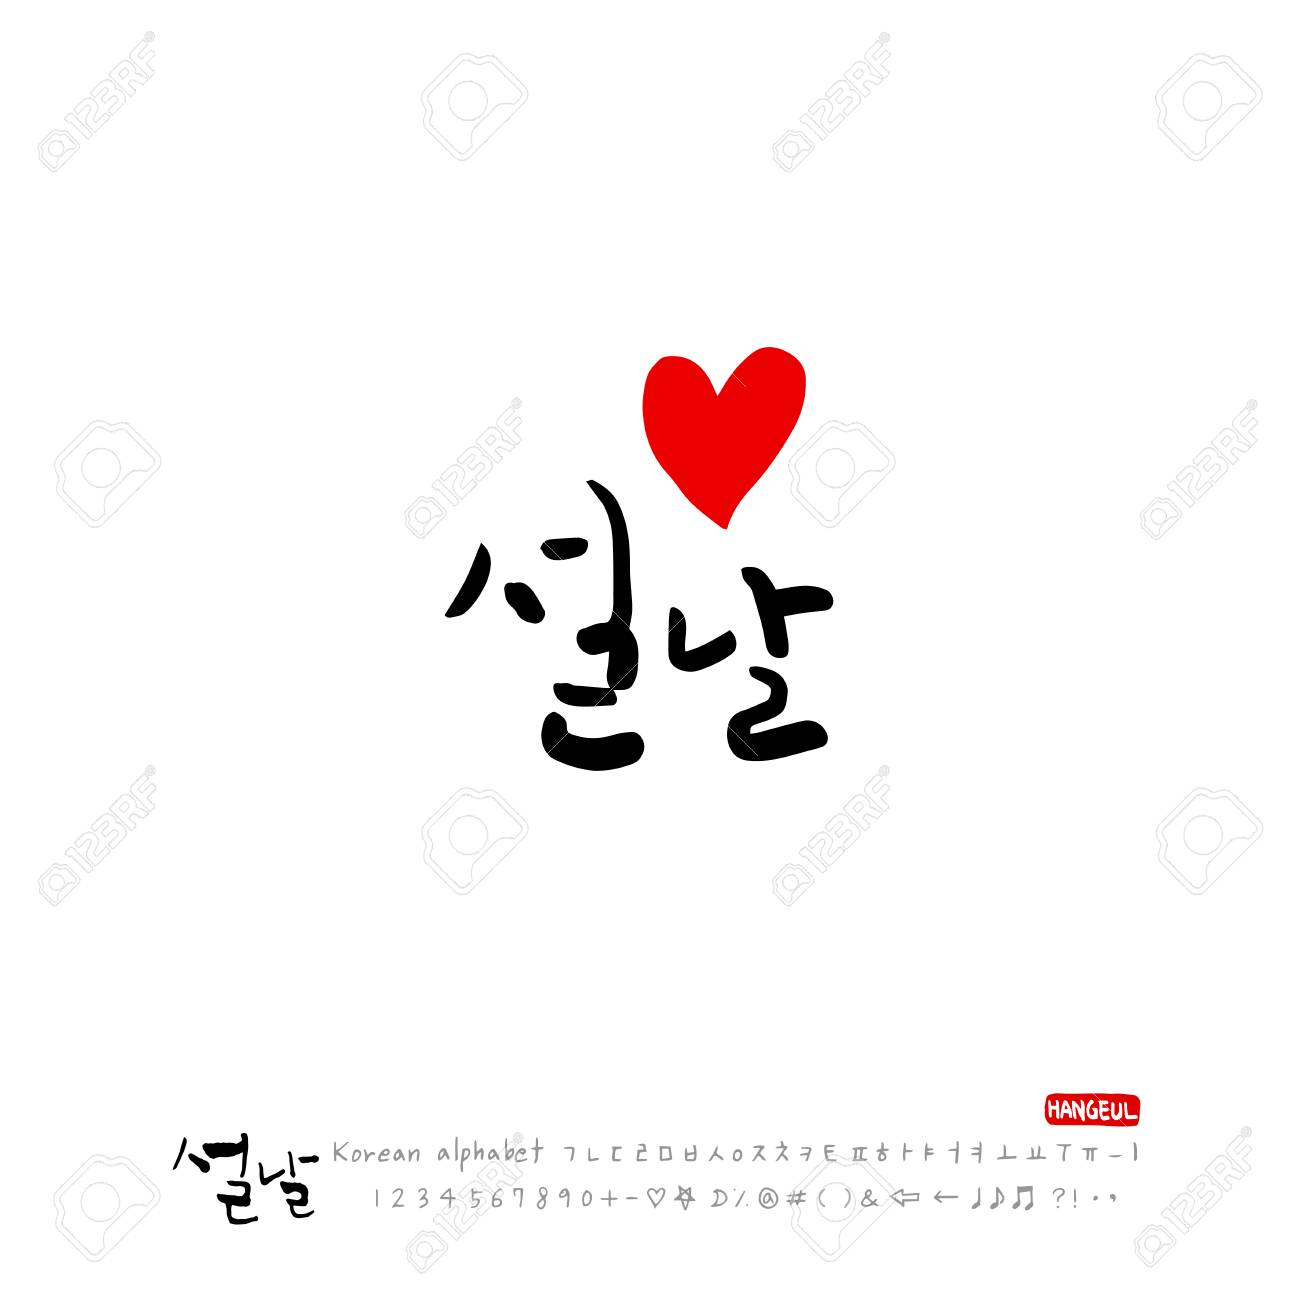 Handwritten korean alphabet calligraphy korean holidays handwritten korean alphabet calligraphy korean holidays new years day greeting happy new m4hsunfo Gallery